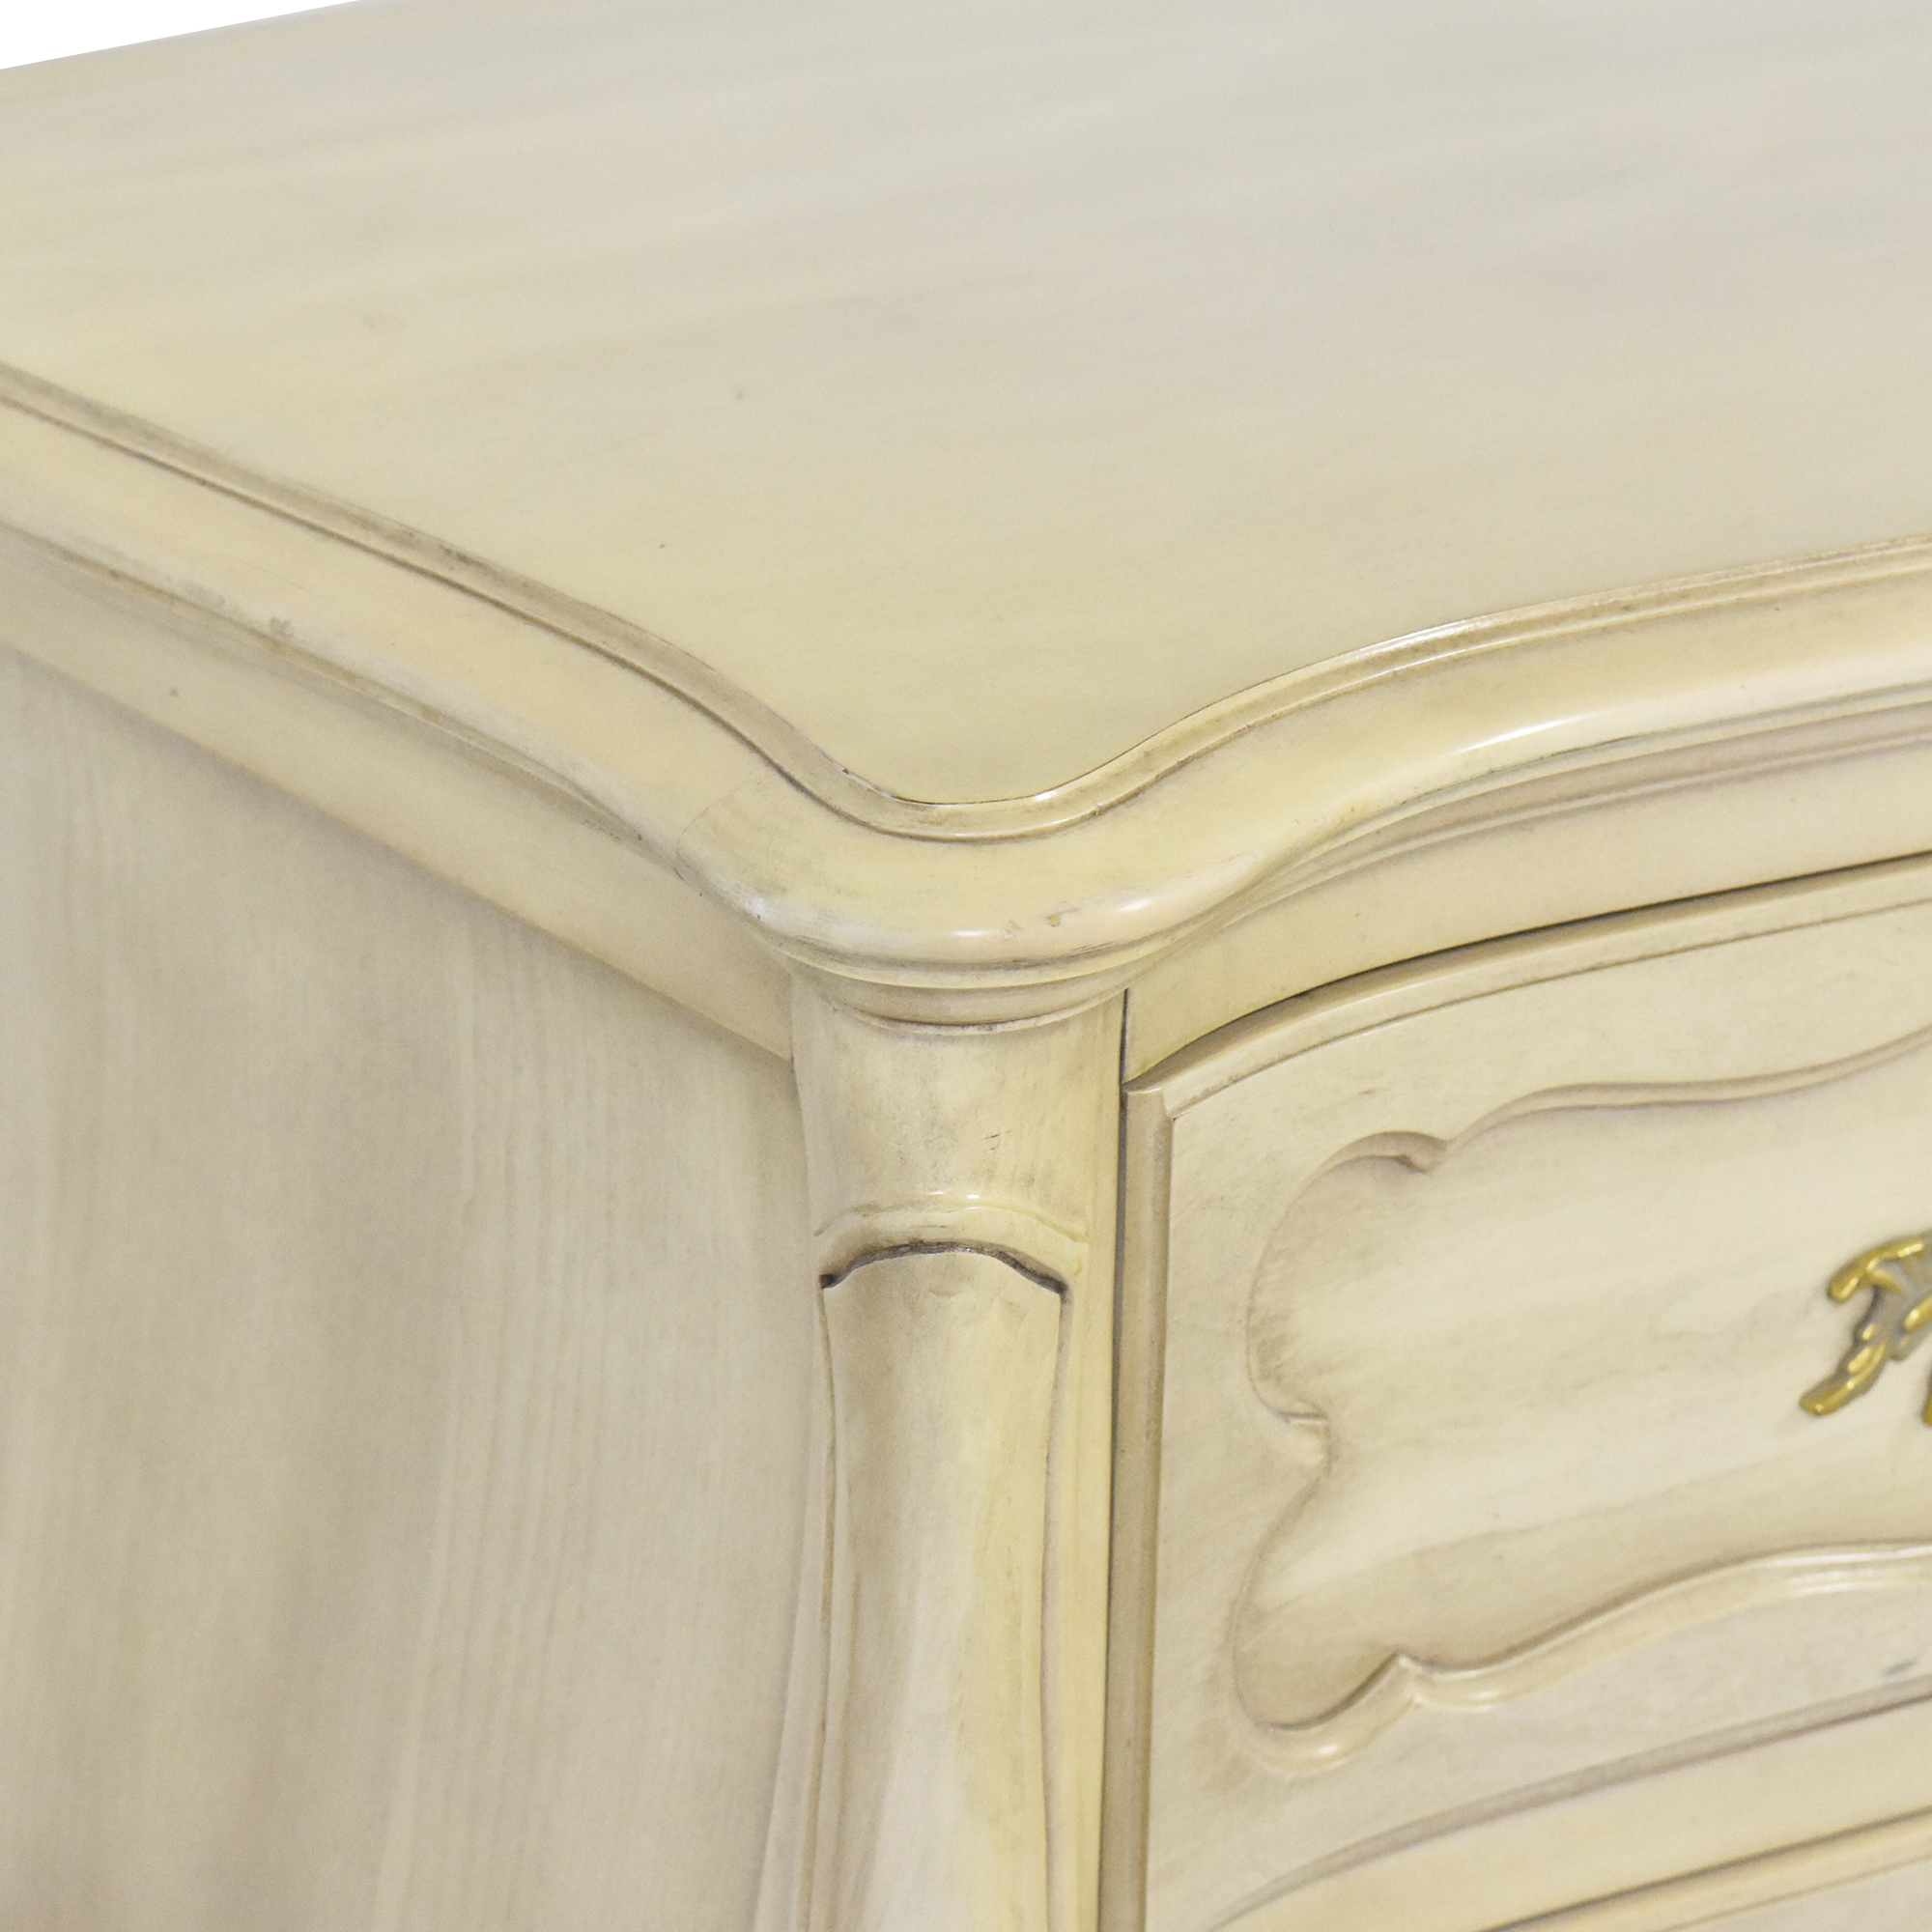 Thomasville French Provincial Style Dresser with Mirror / Storage